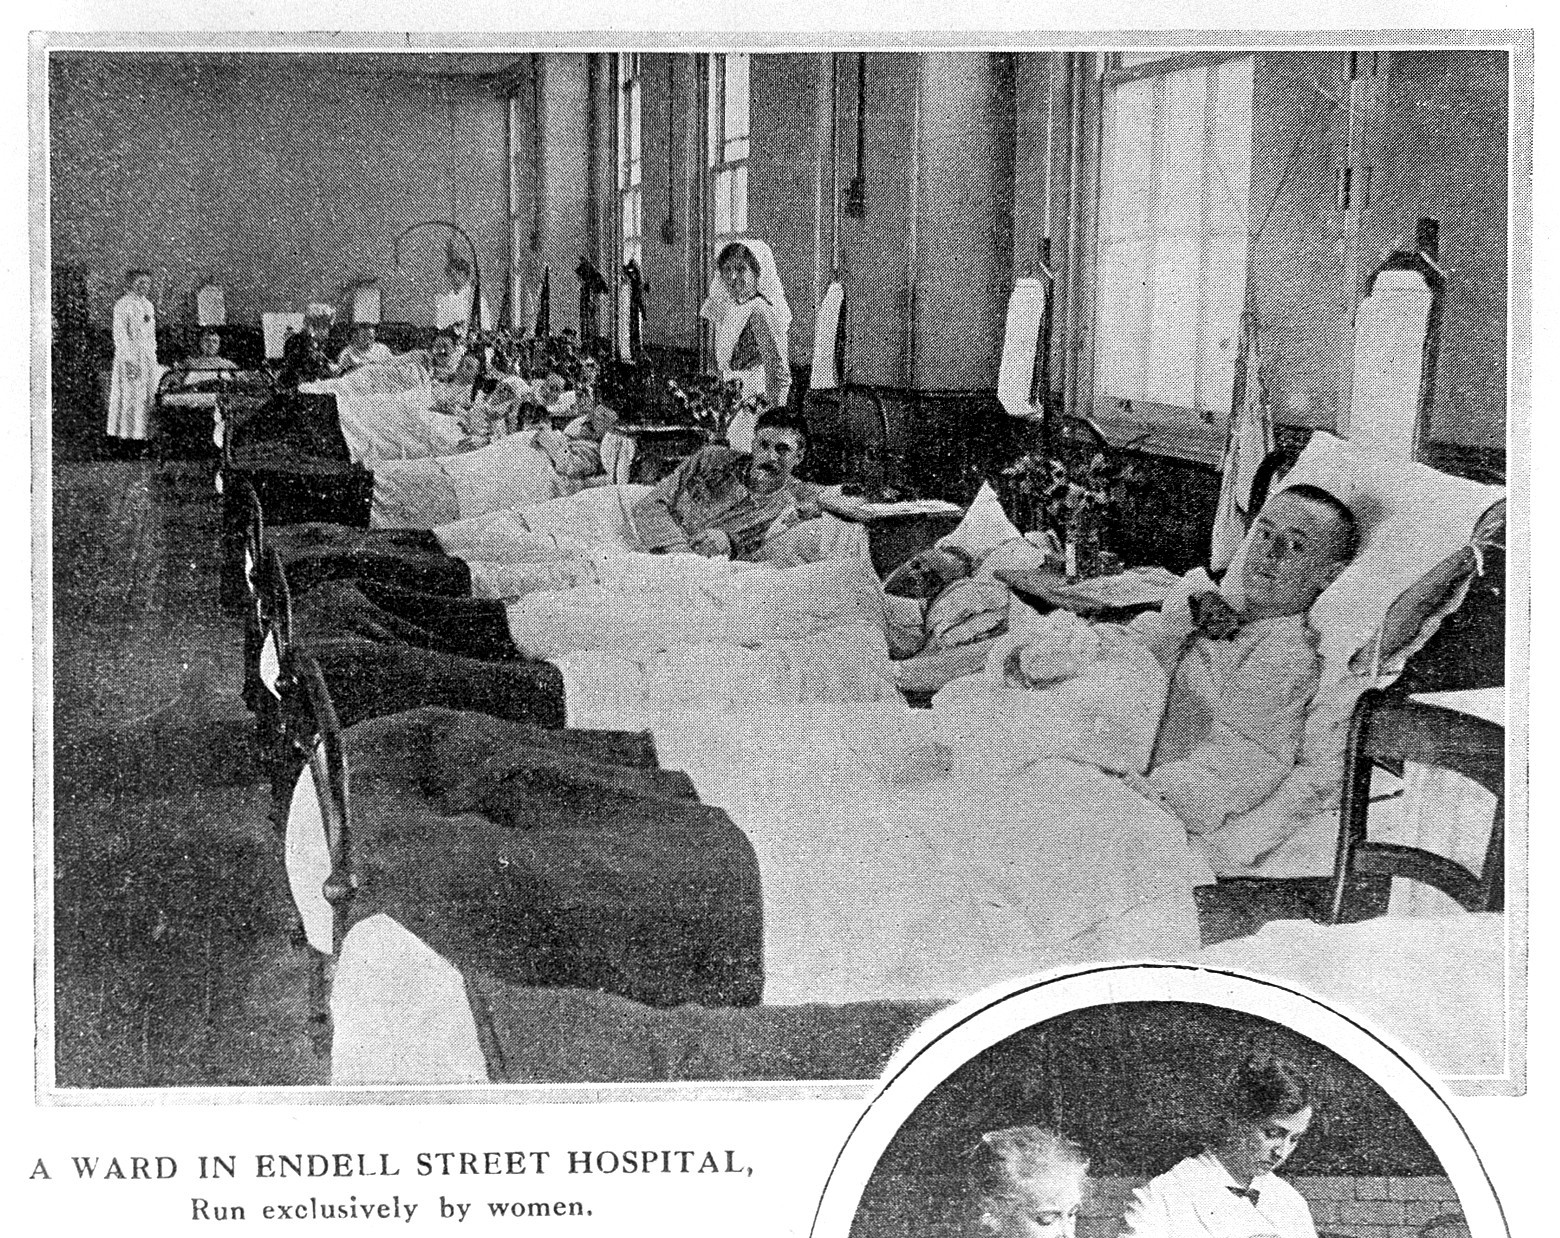 Photograph of a ward in the Endell Street Hospital in London, run exclusively by women.